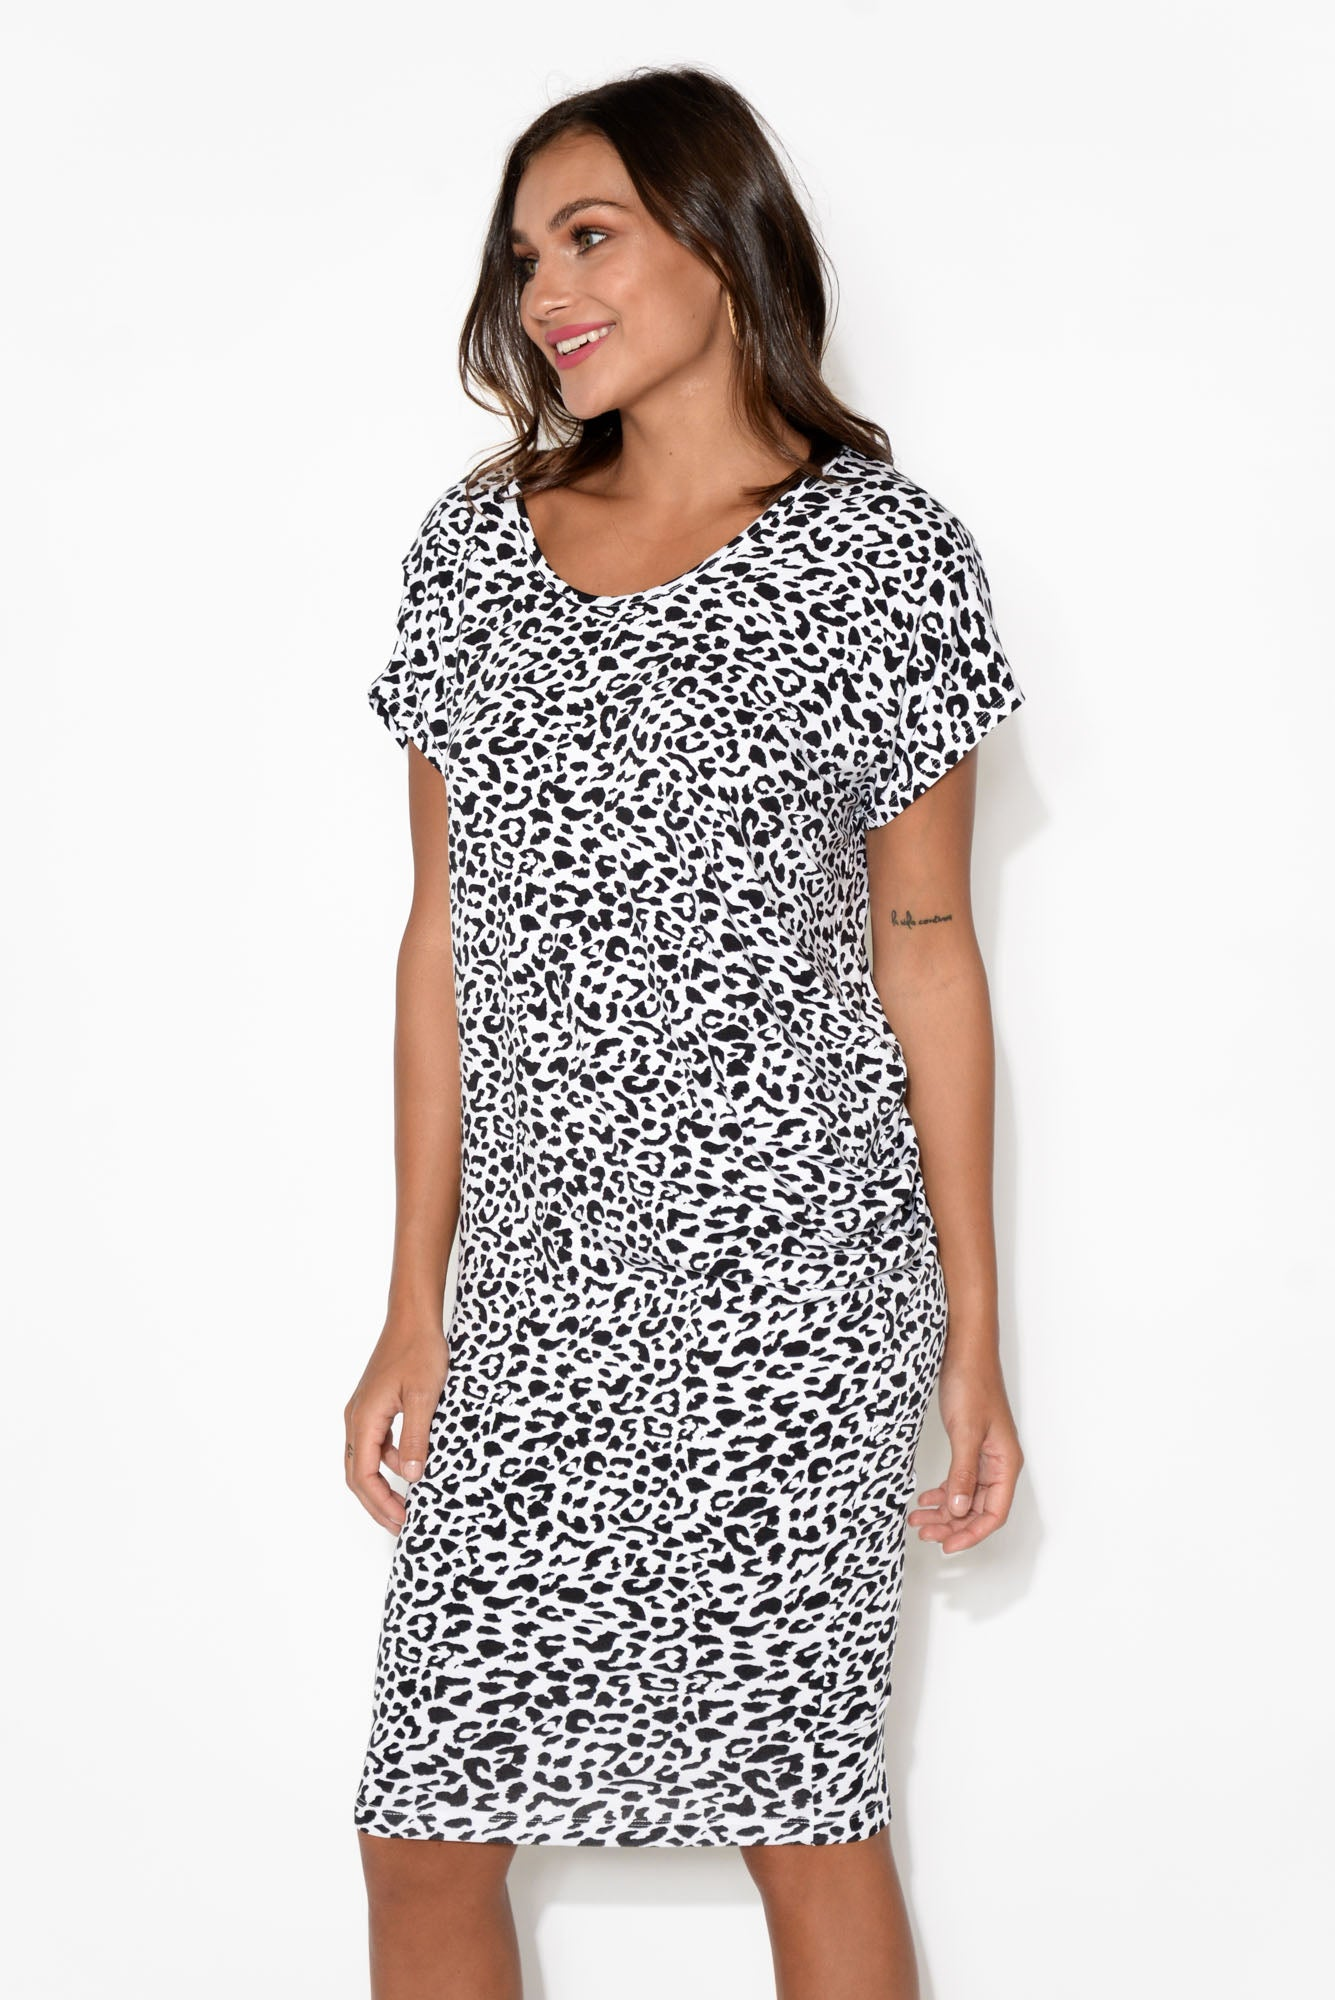 Nora Black Leopard Bamboo Dress